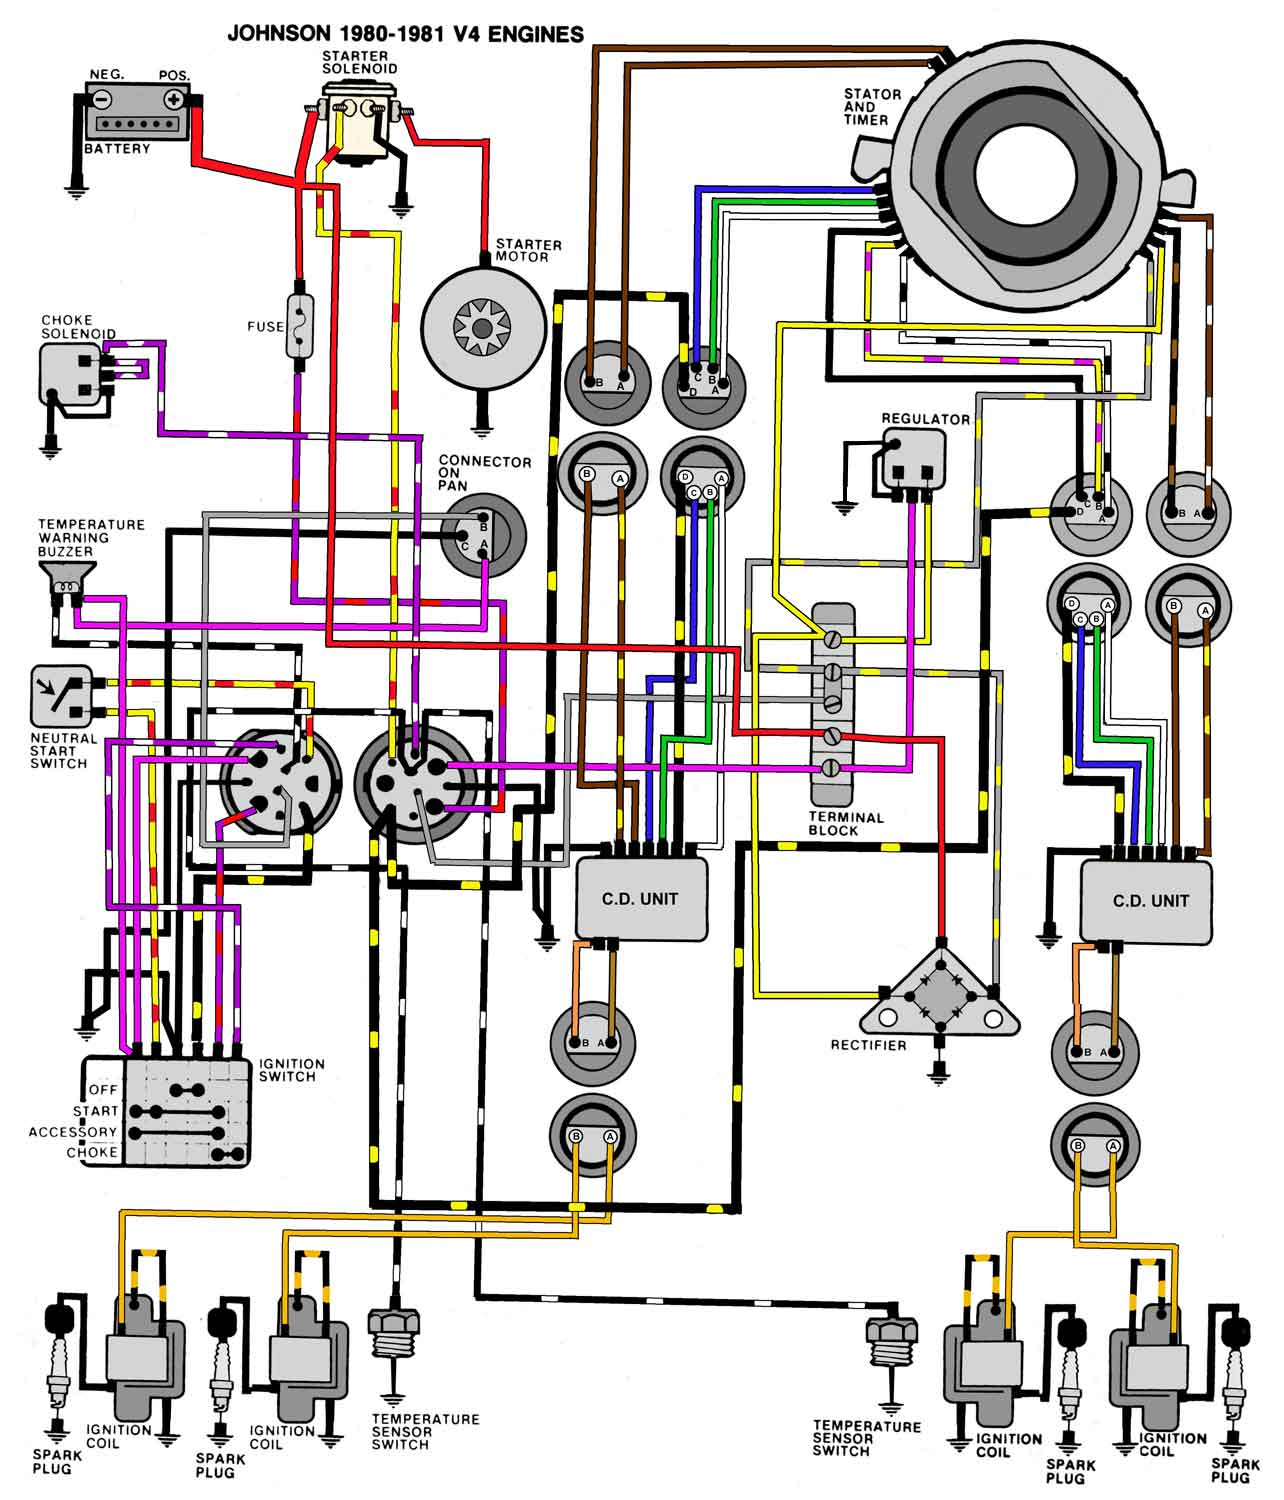 76 Evinrude 85 Hp Wiring Diagram Auto Electrical Harness For Gm 13020122 Johnson Outboard Diagrams